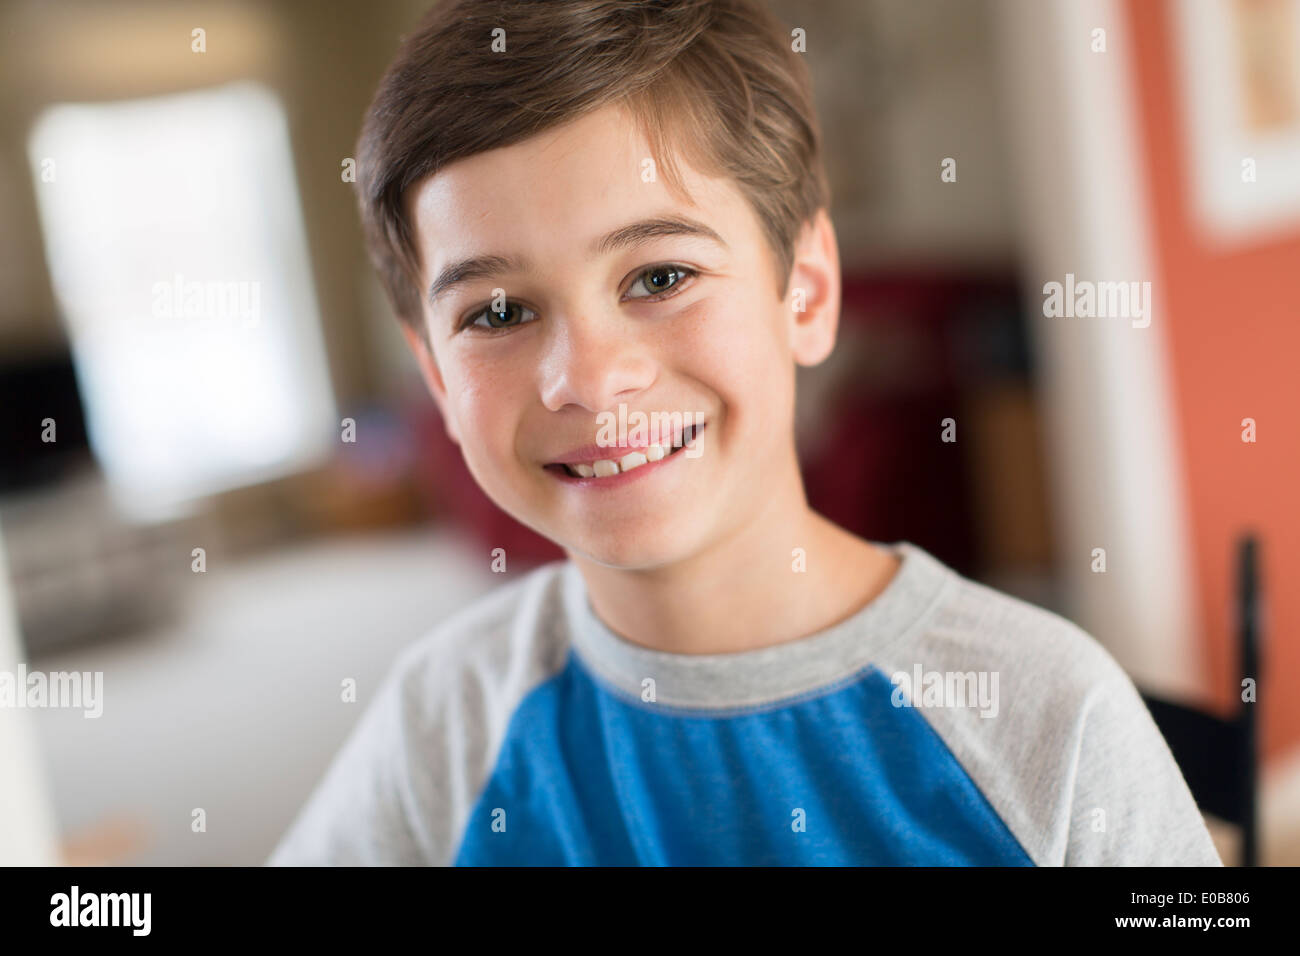 Portrait of smiling boy at home - Stock Image